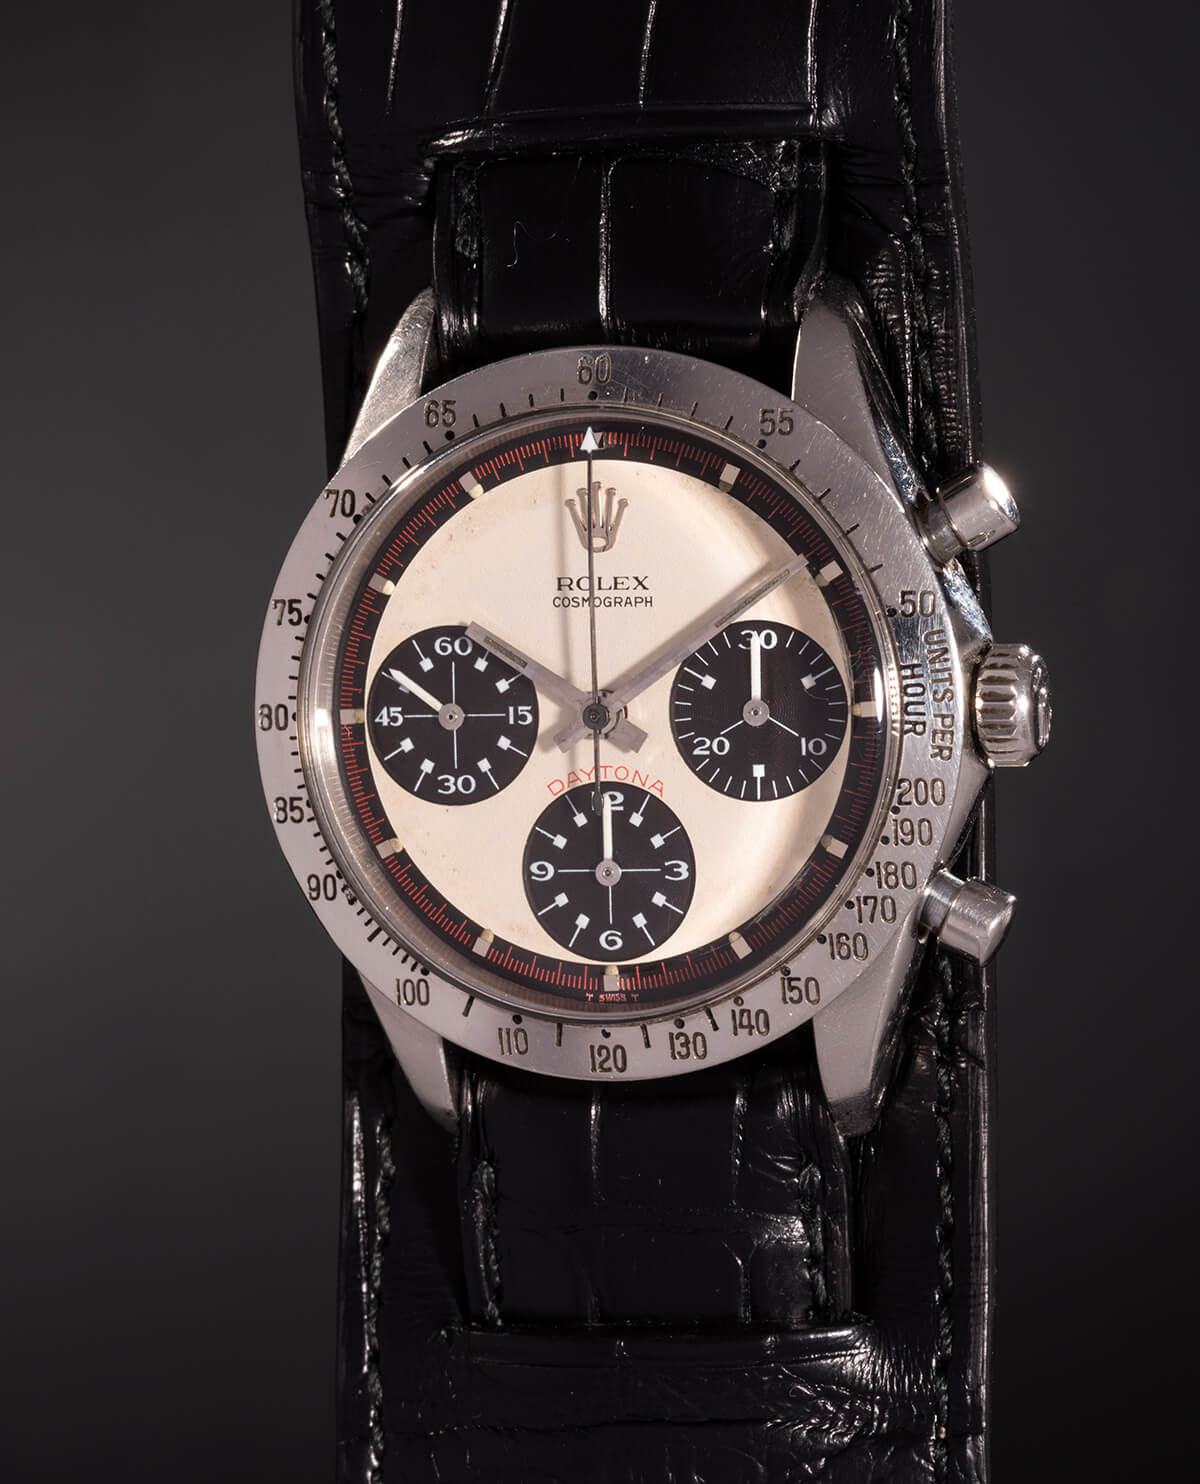 Paul Newman's personal Rolex Daytona (photo courtesy Phillips/Bacs and Russo)